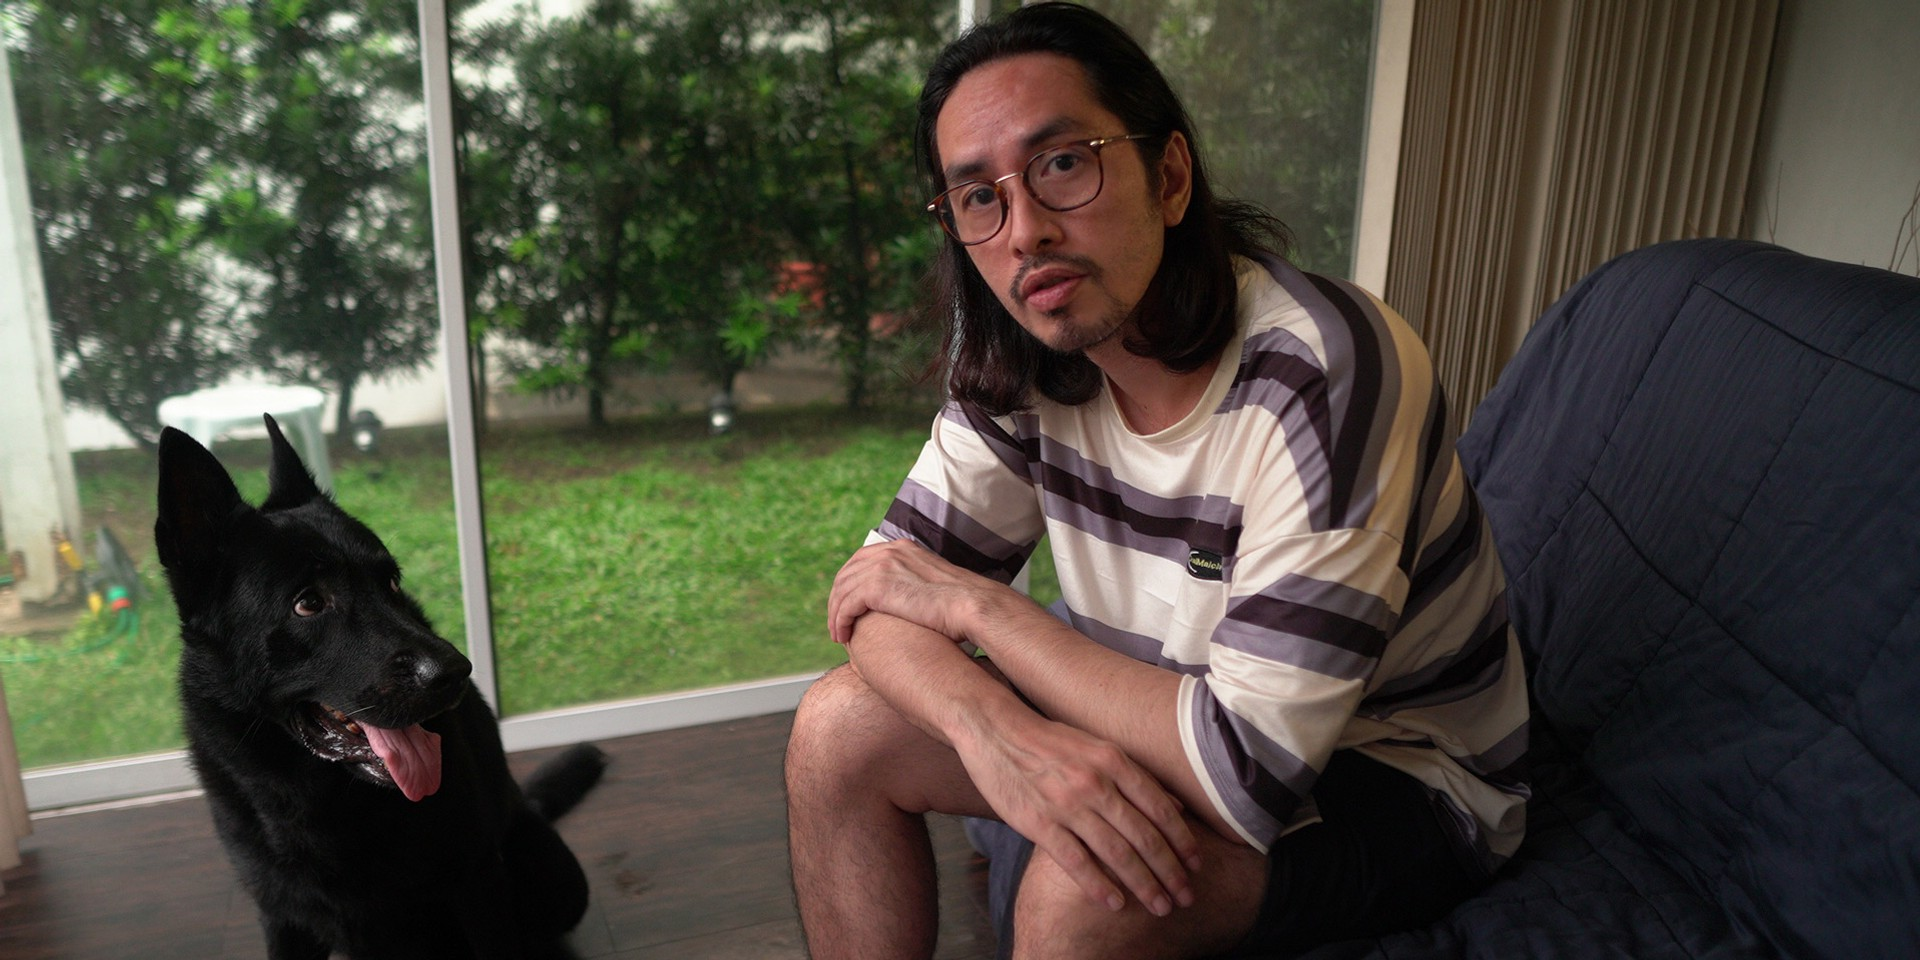 Checking in with Rico Blanco after one year in lockdown